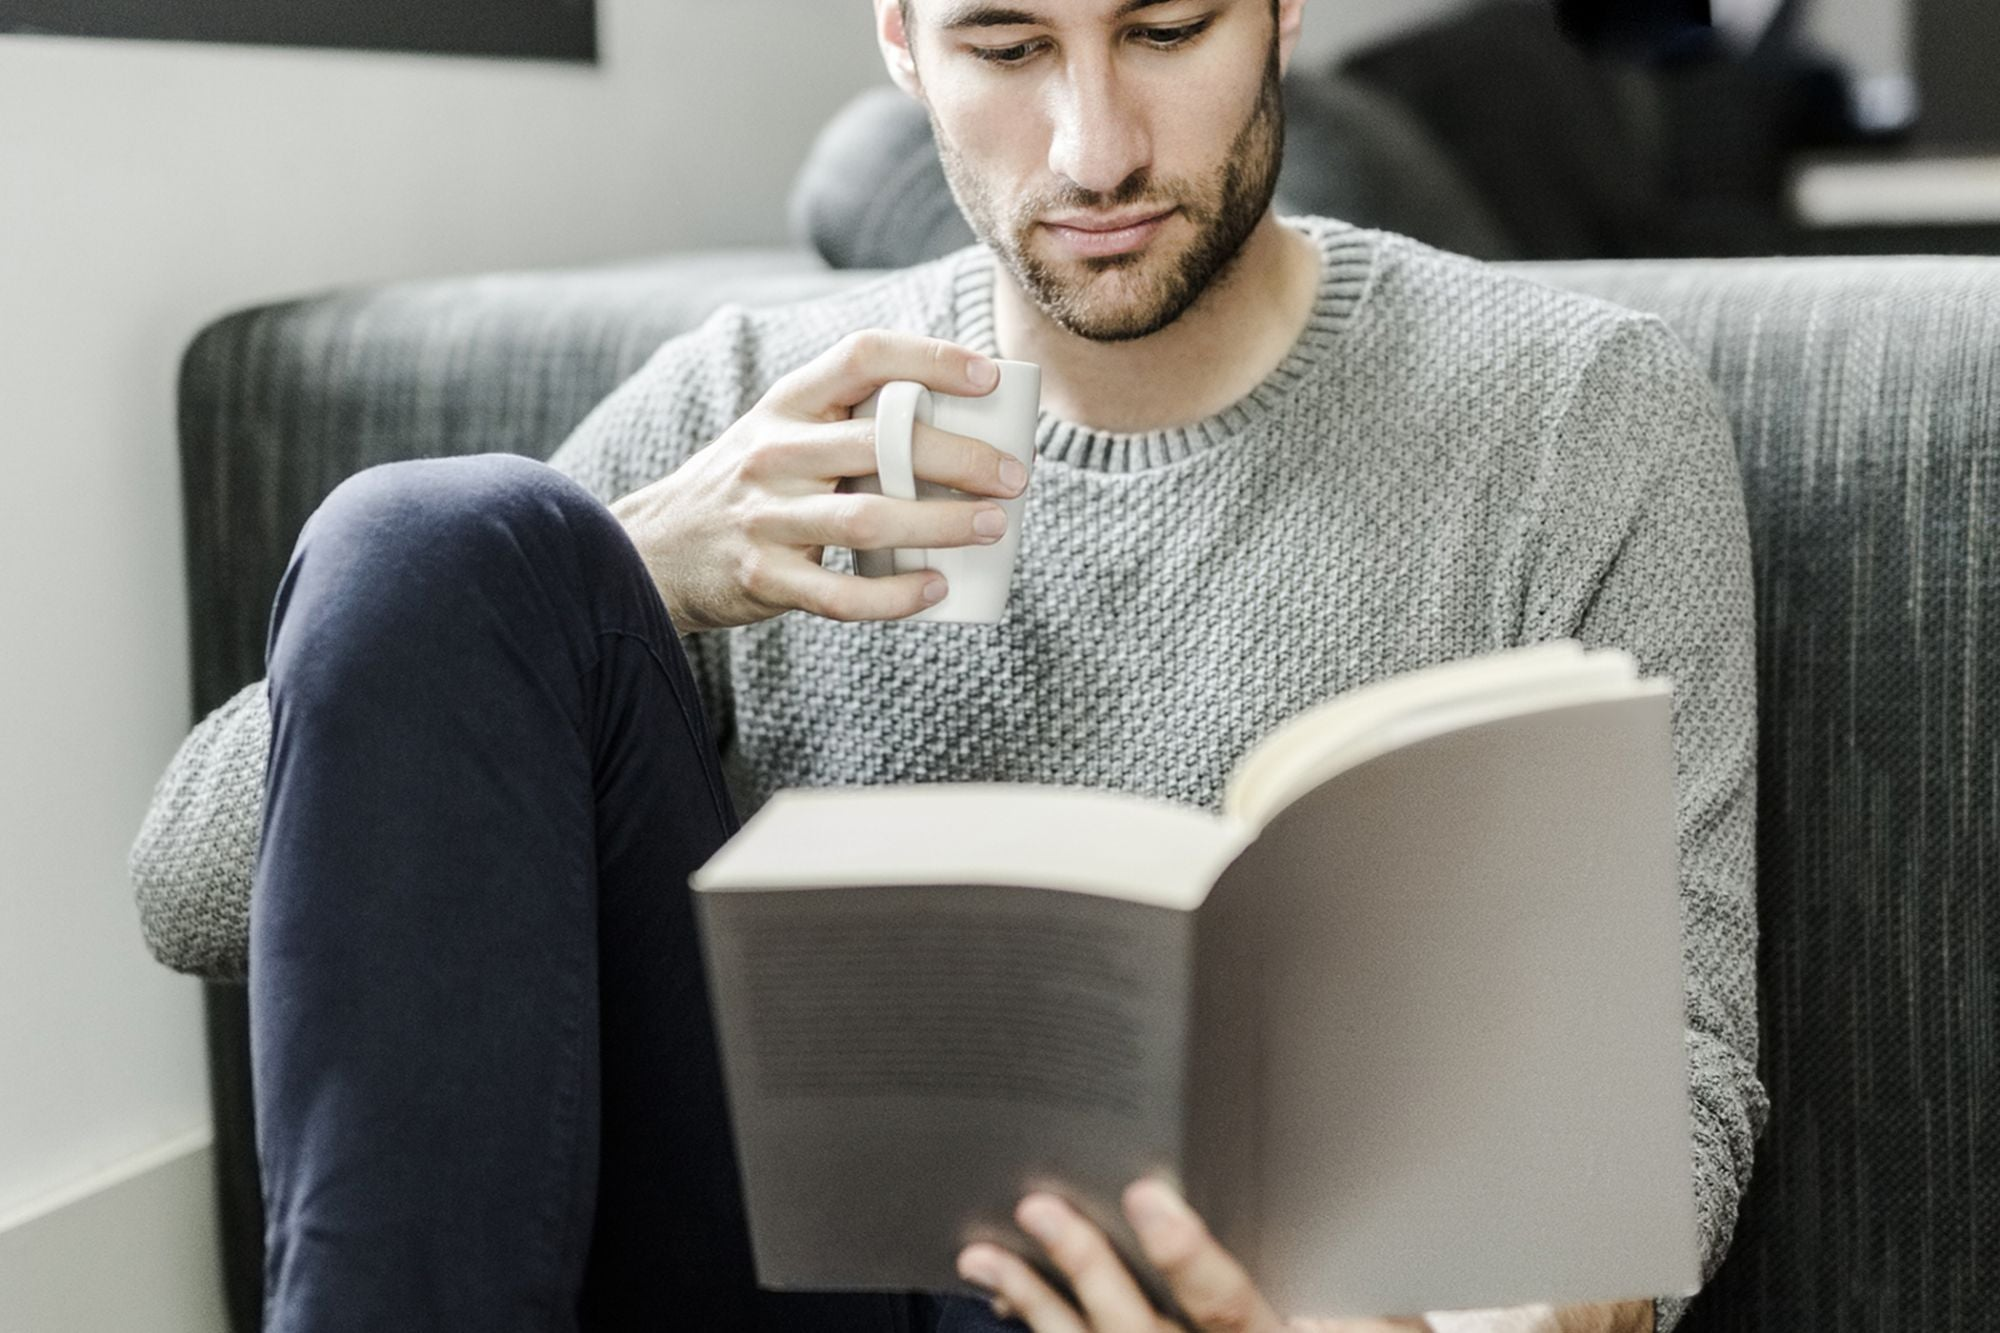 The 5 Books I Read That Helped Me Build a Multi-Million Dollar Company